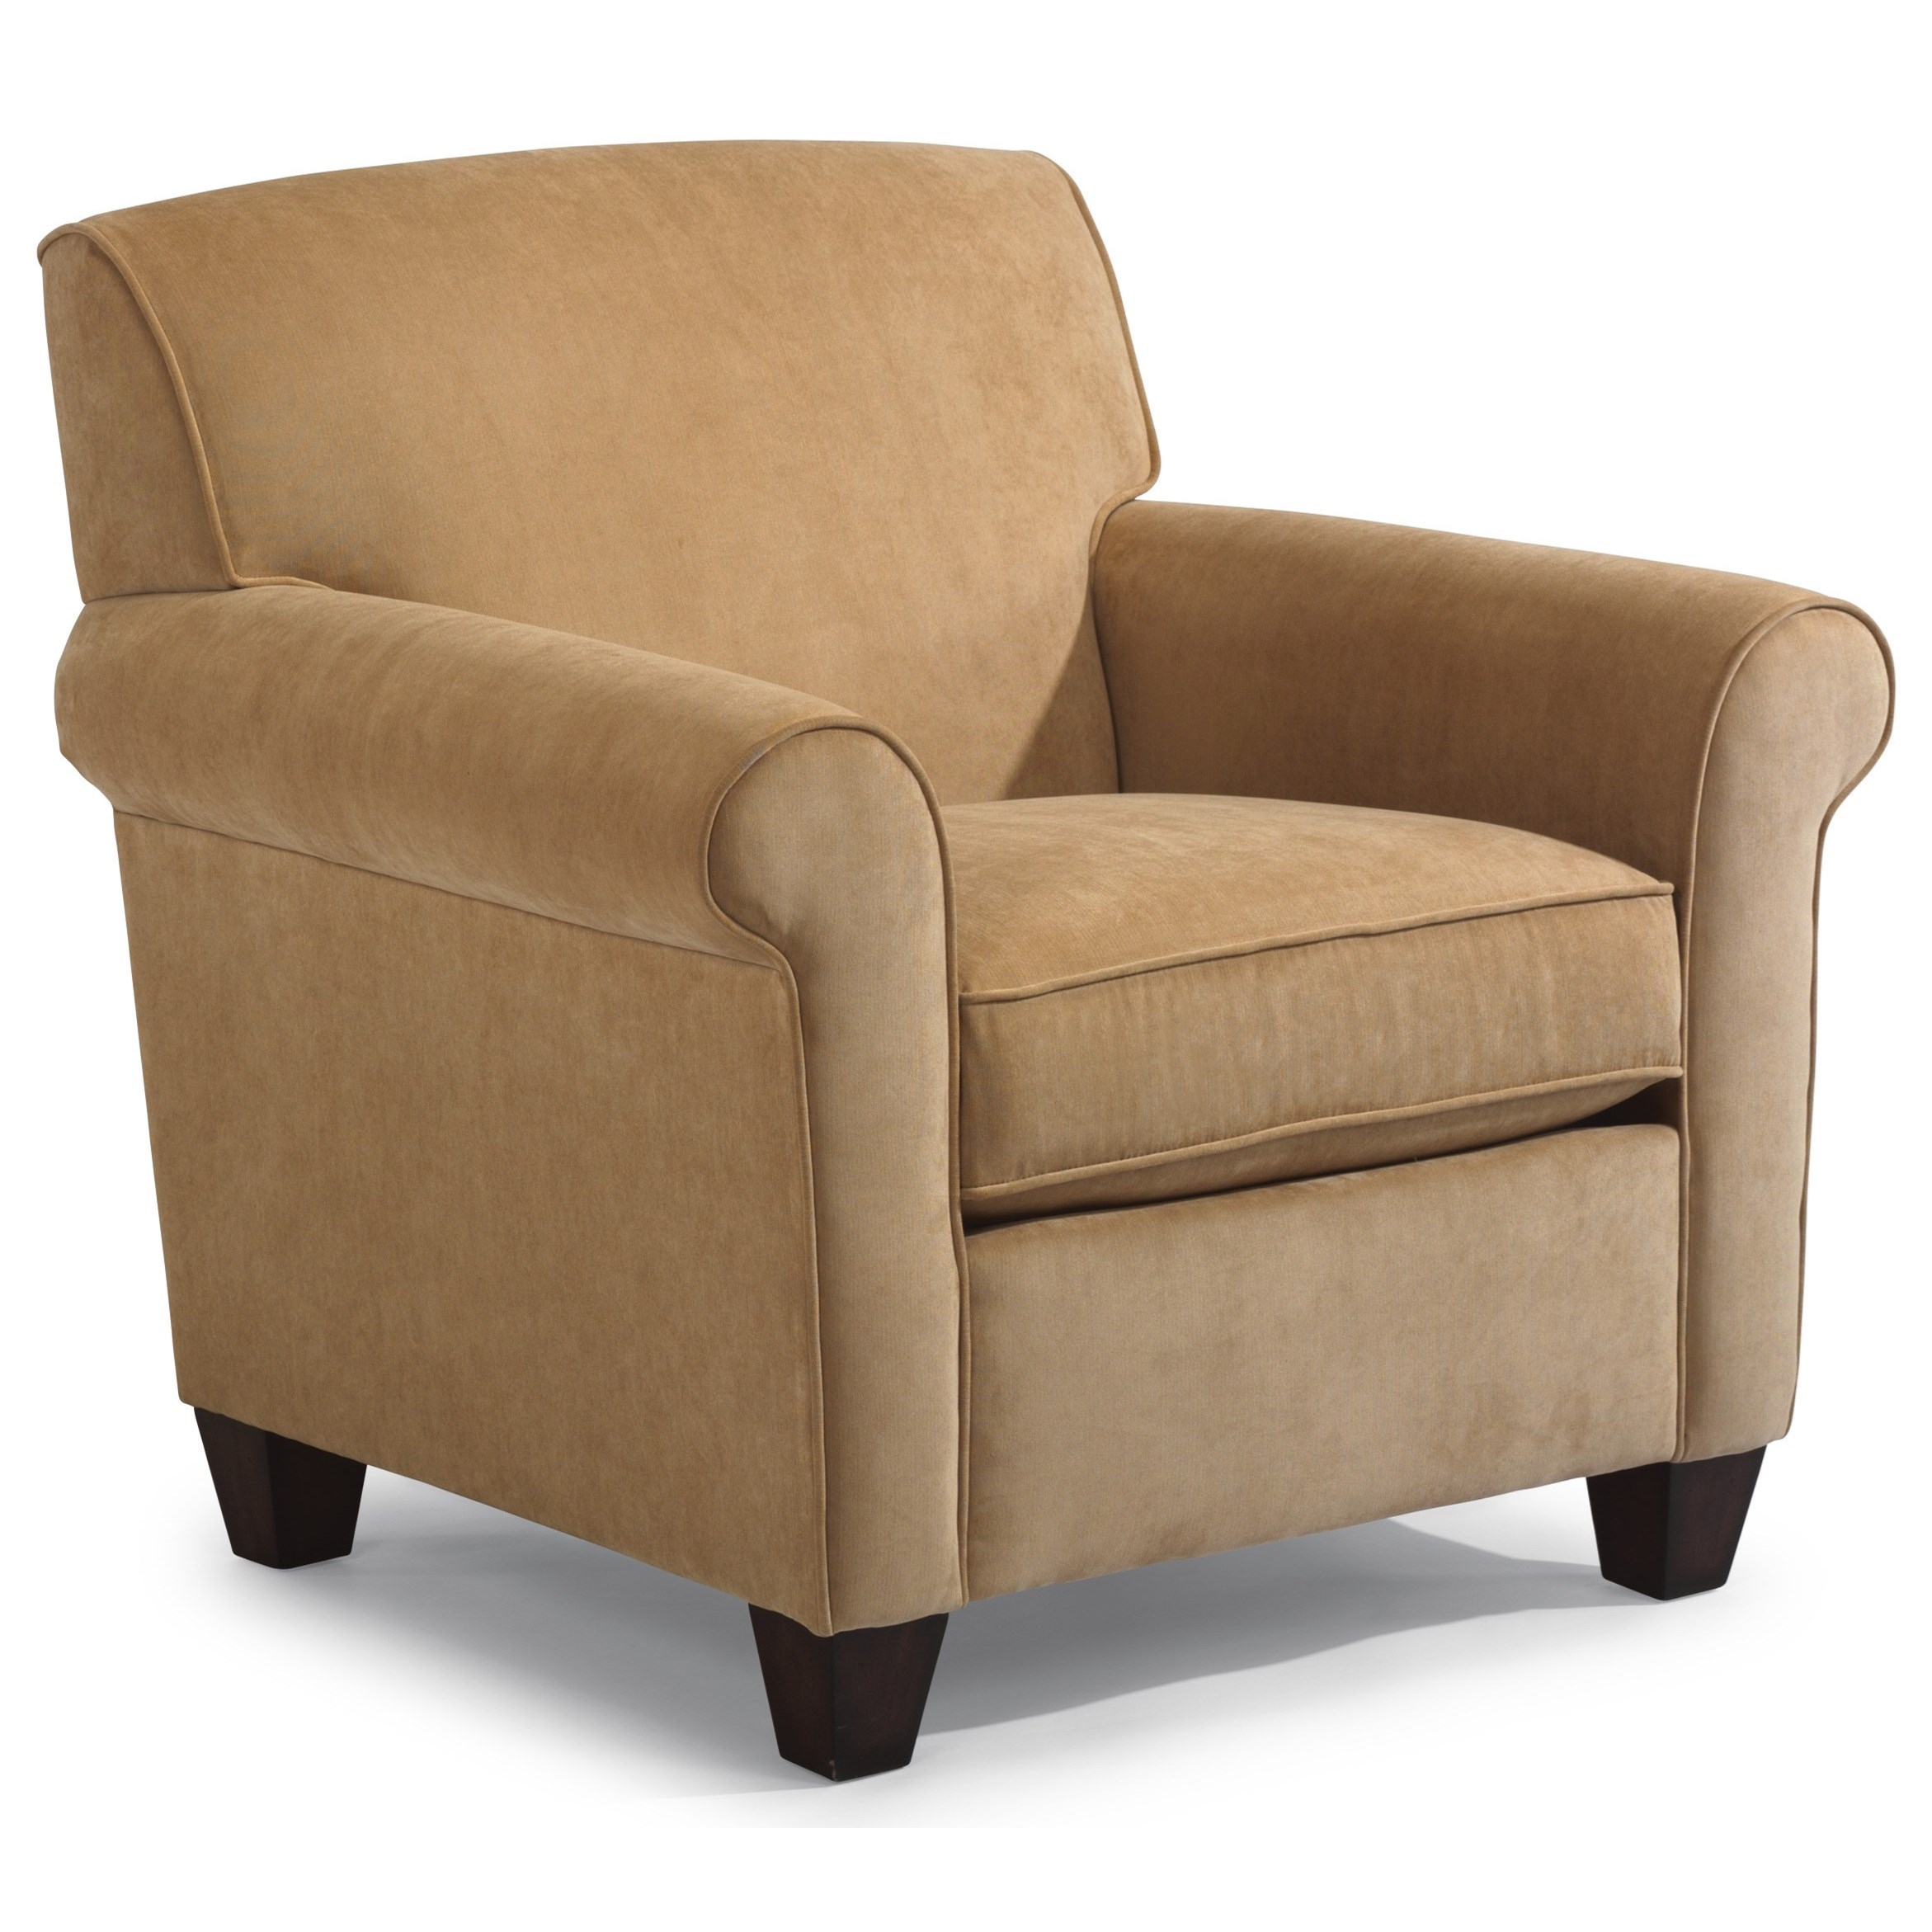 Dana Upholstered Chair by Flexsteel at Suburban Furniture